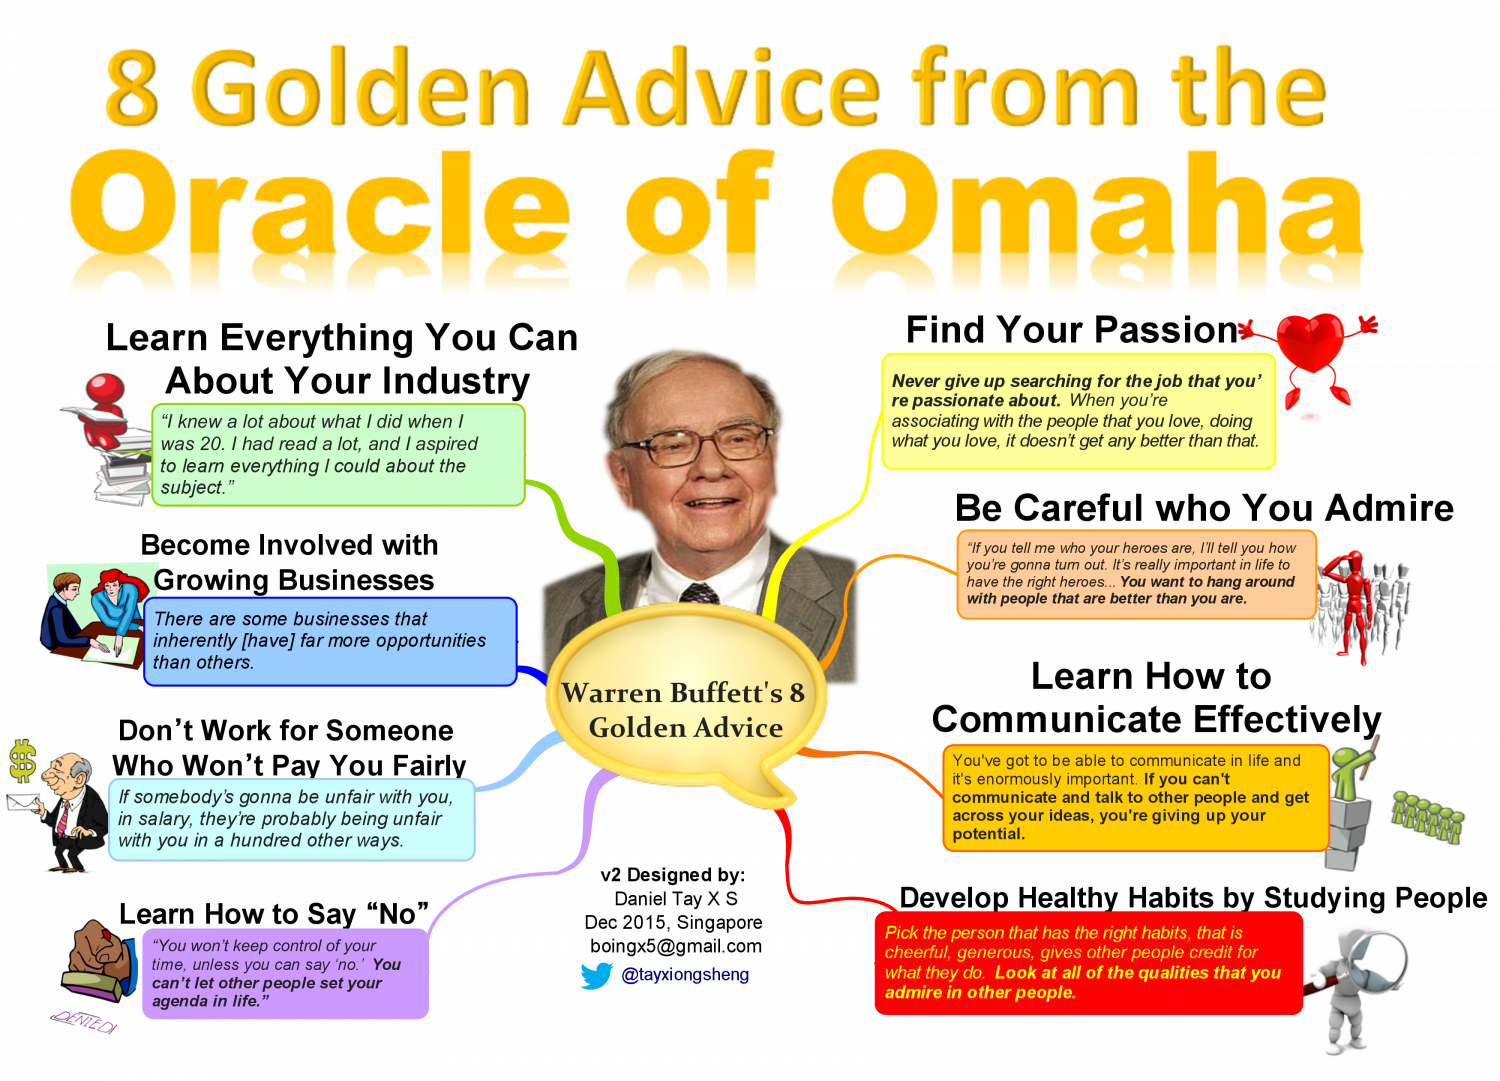 8 Golden Advice from Warren Buffett Infographic